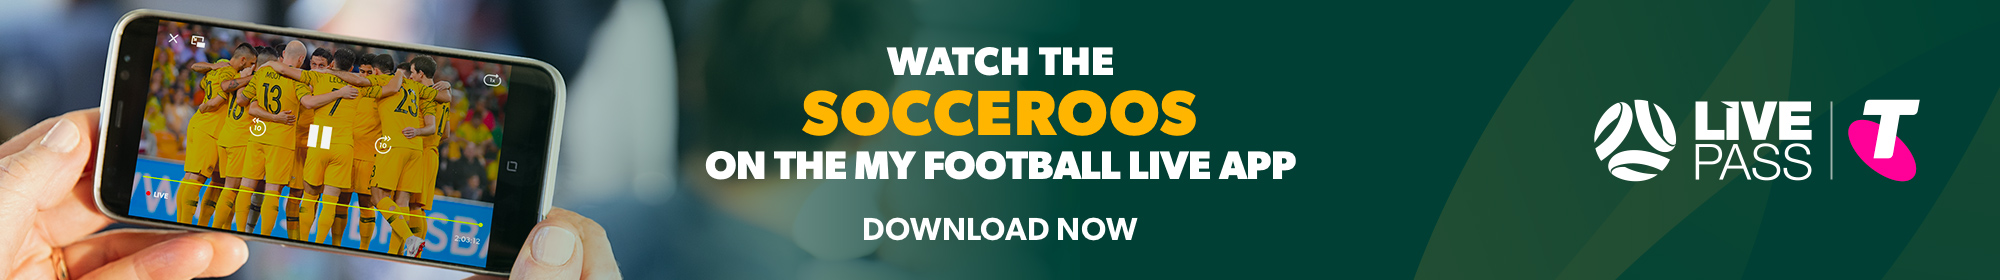 Live-Pass-My-Football-Live